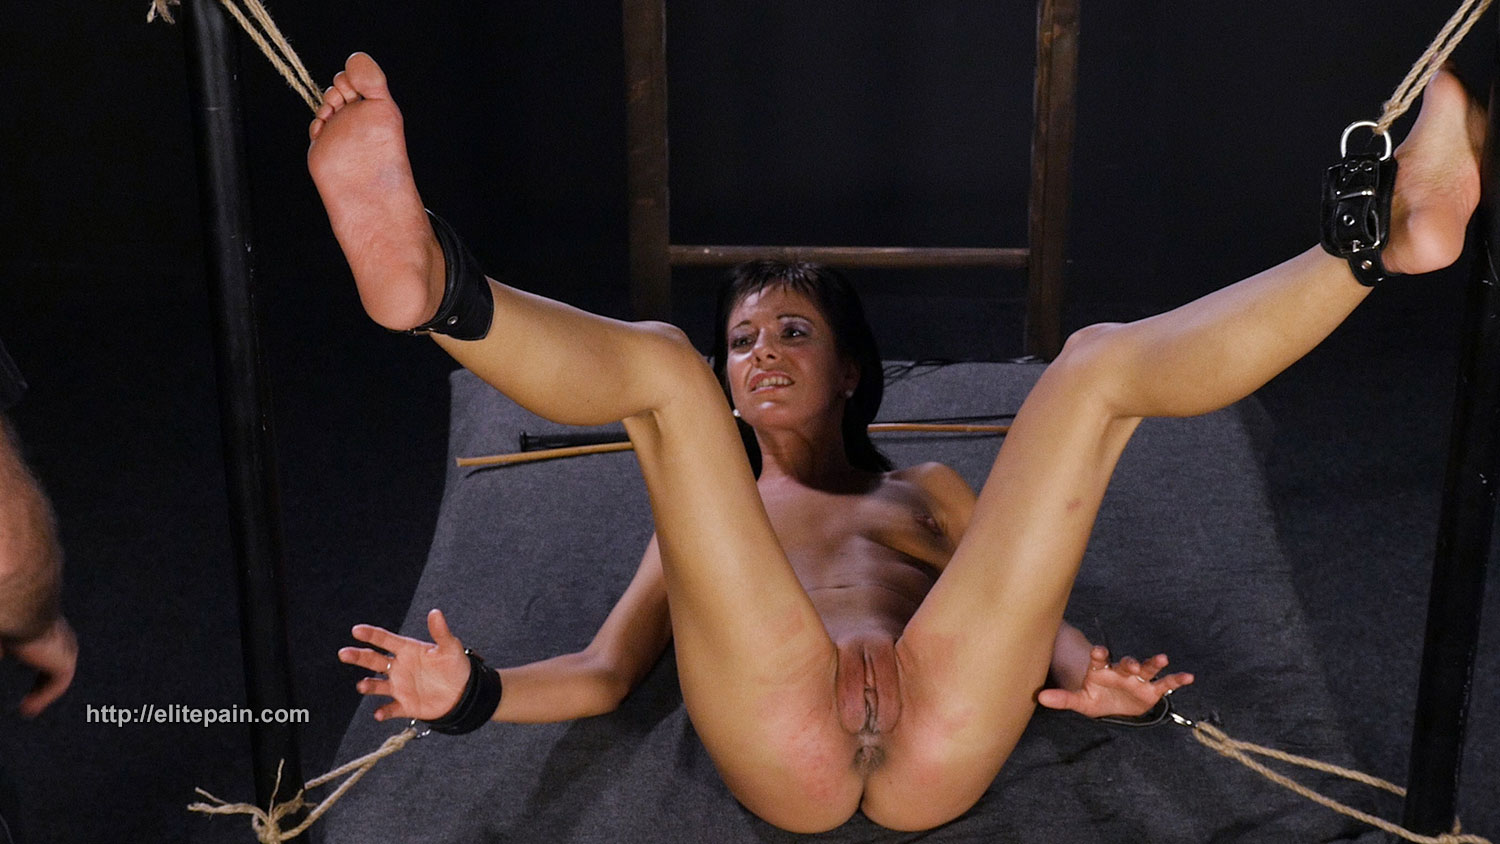 Bdsm feet torturing with stones